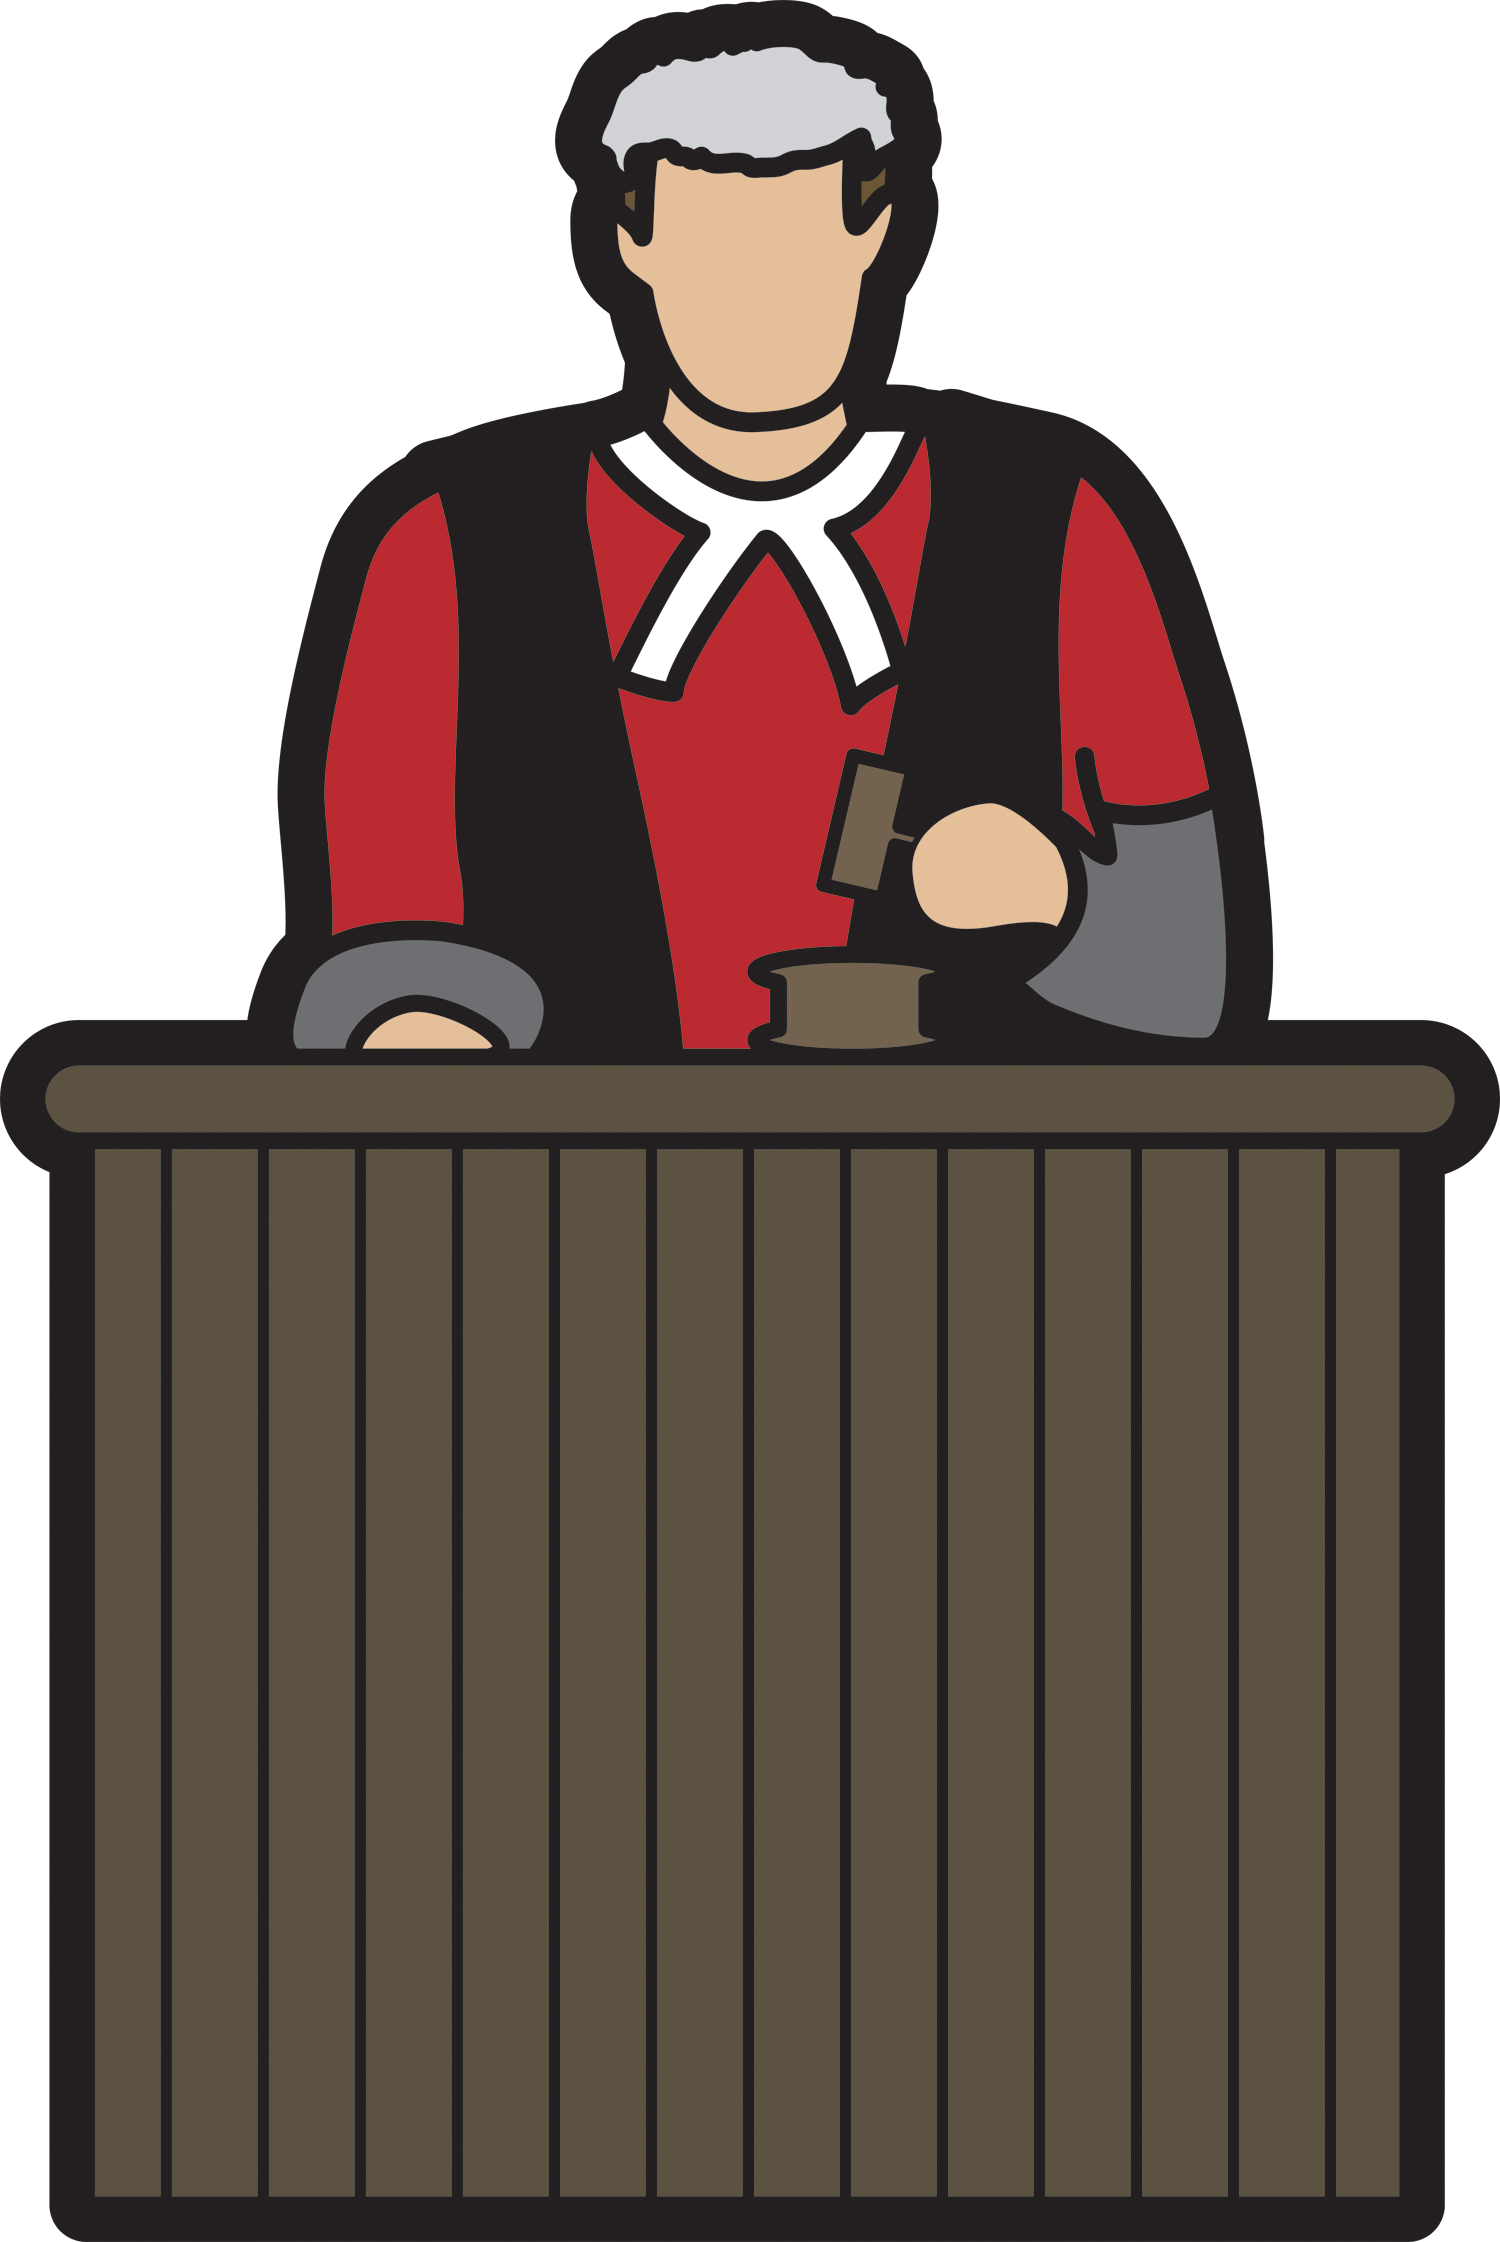 Court drawing cartoon. Free judge download clip